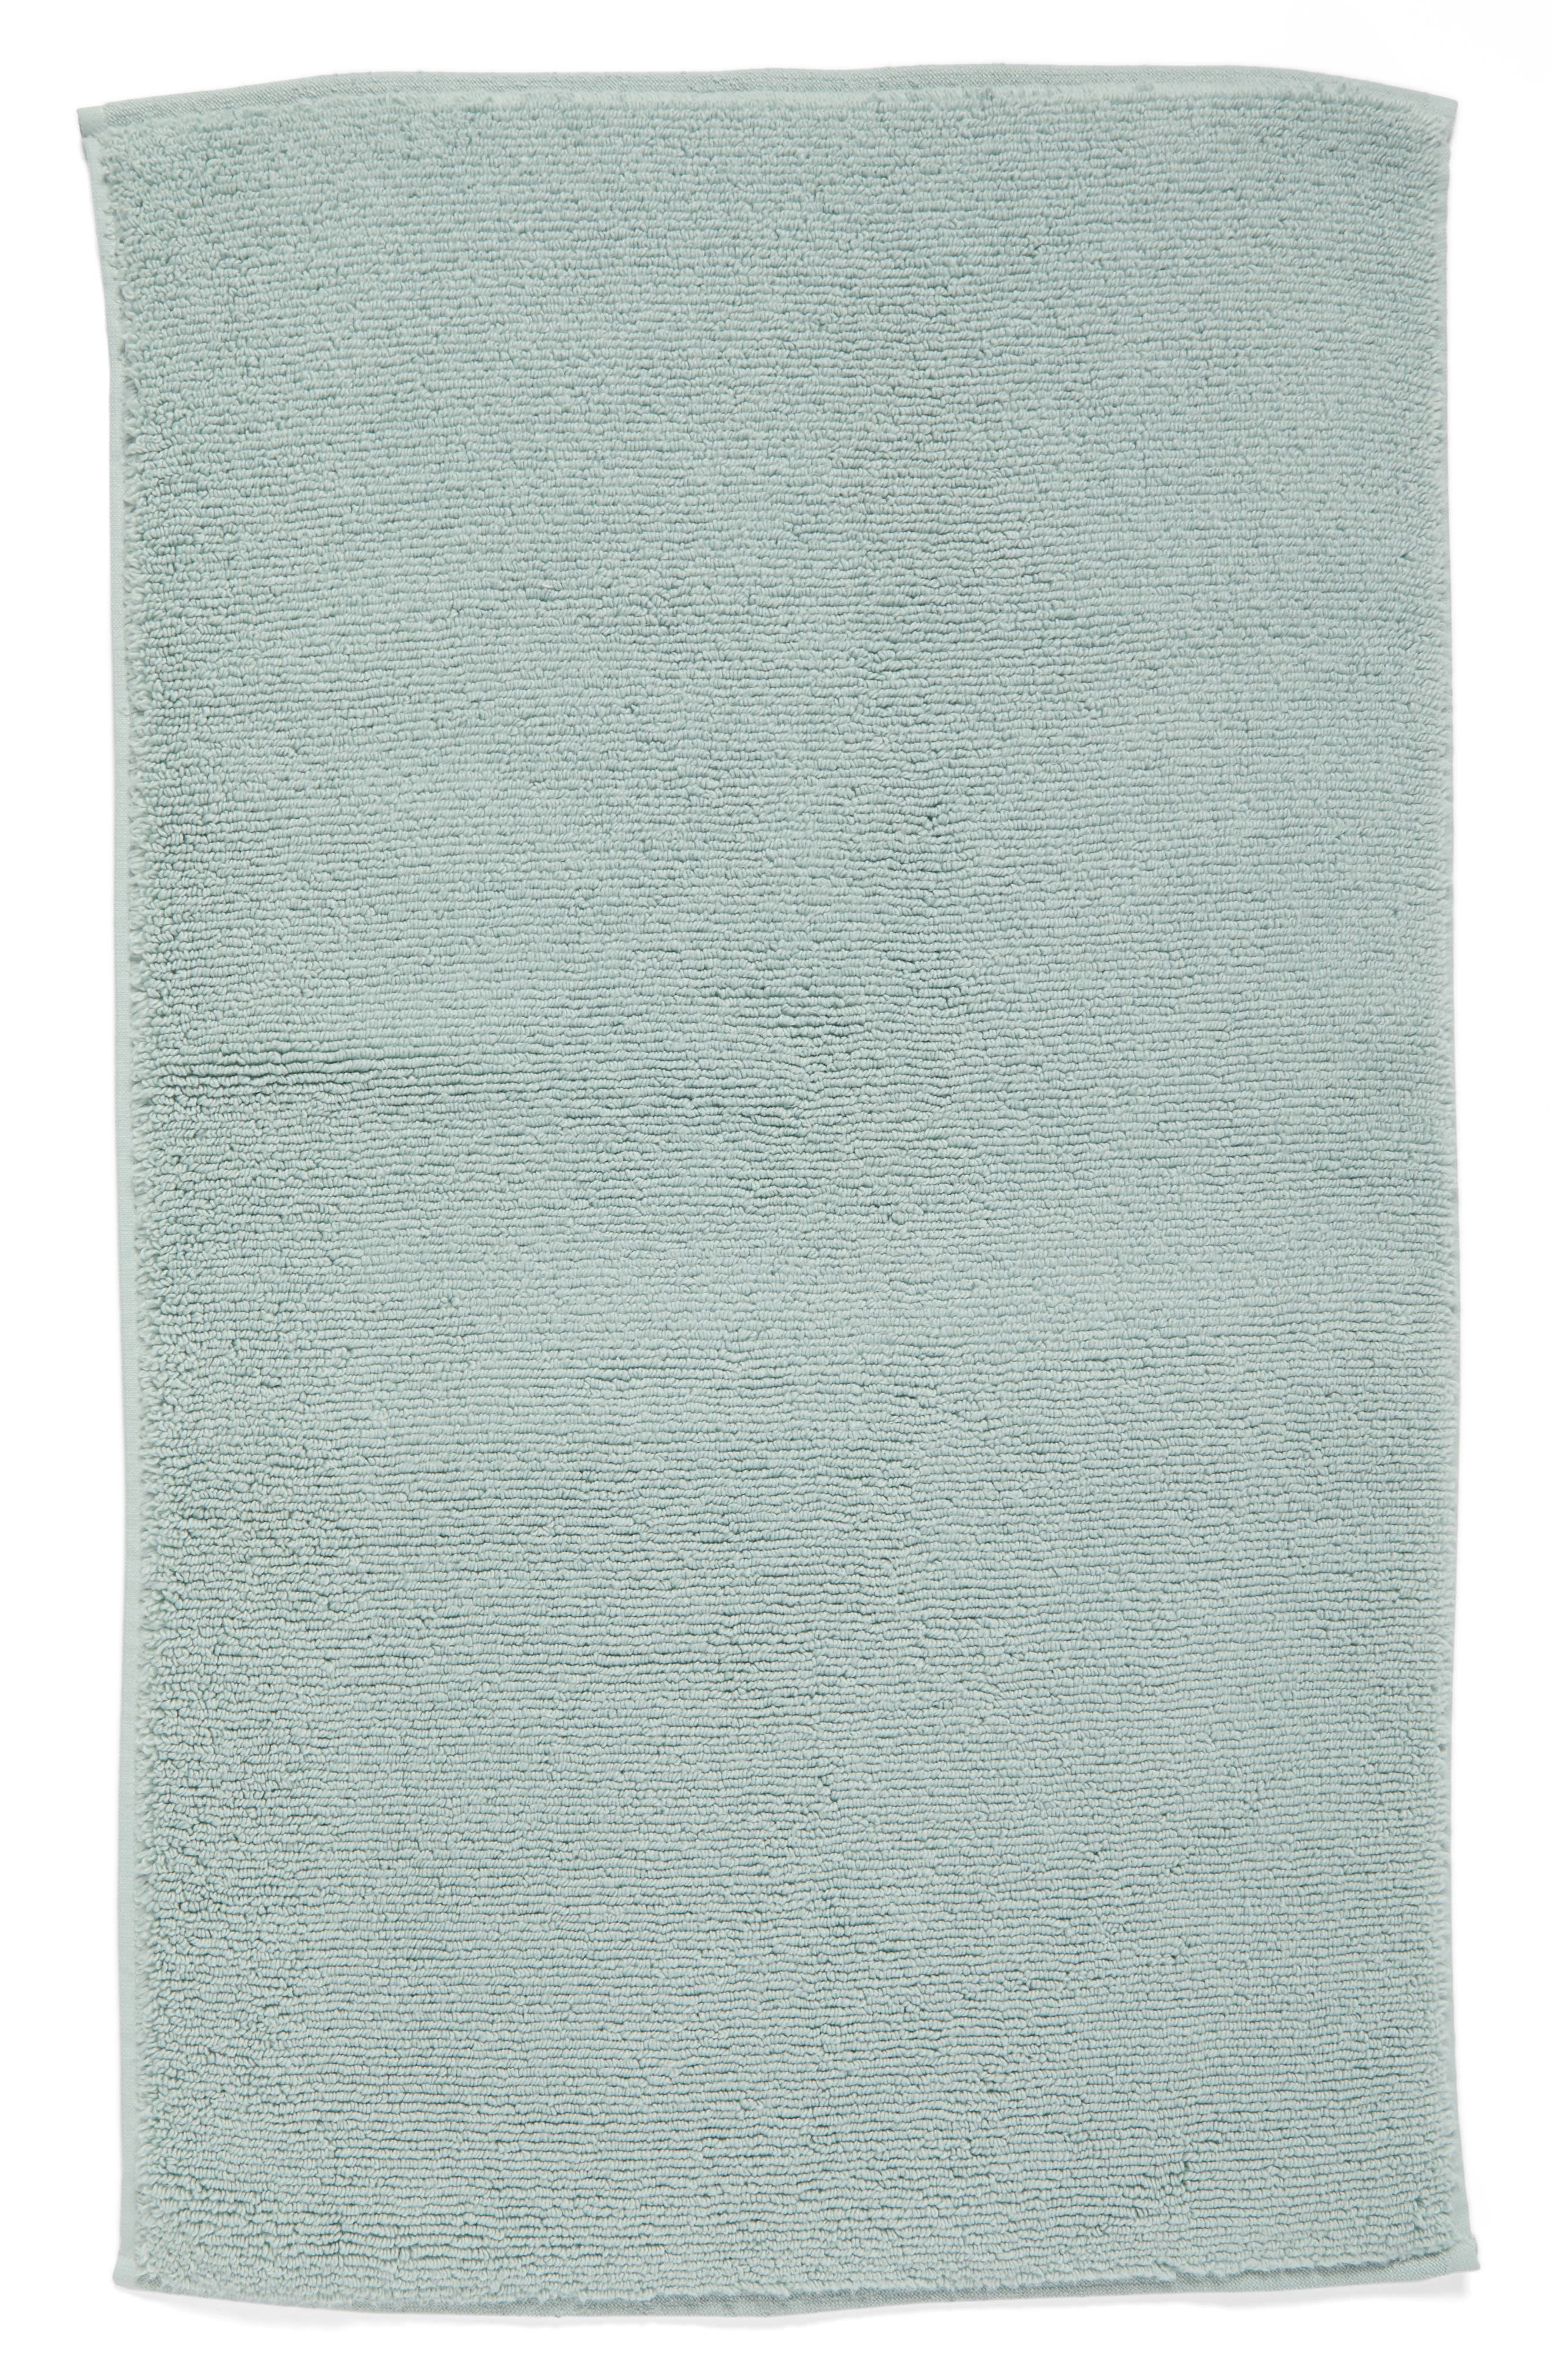 Alternate Image 1 Selected - Nordstrom at Home Hydrocotton Bath Mat